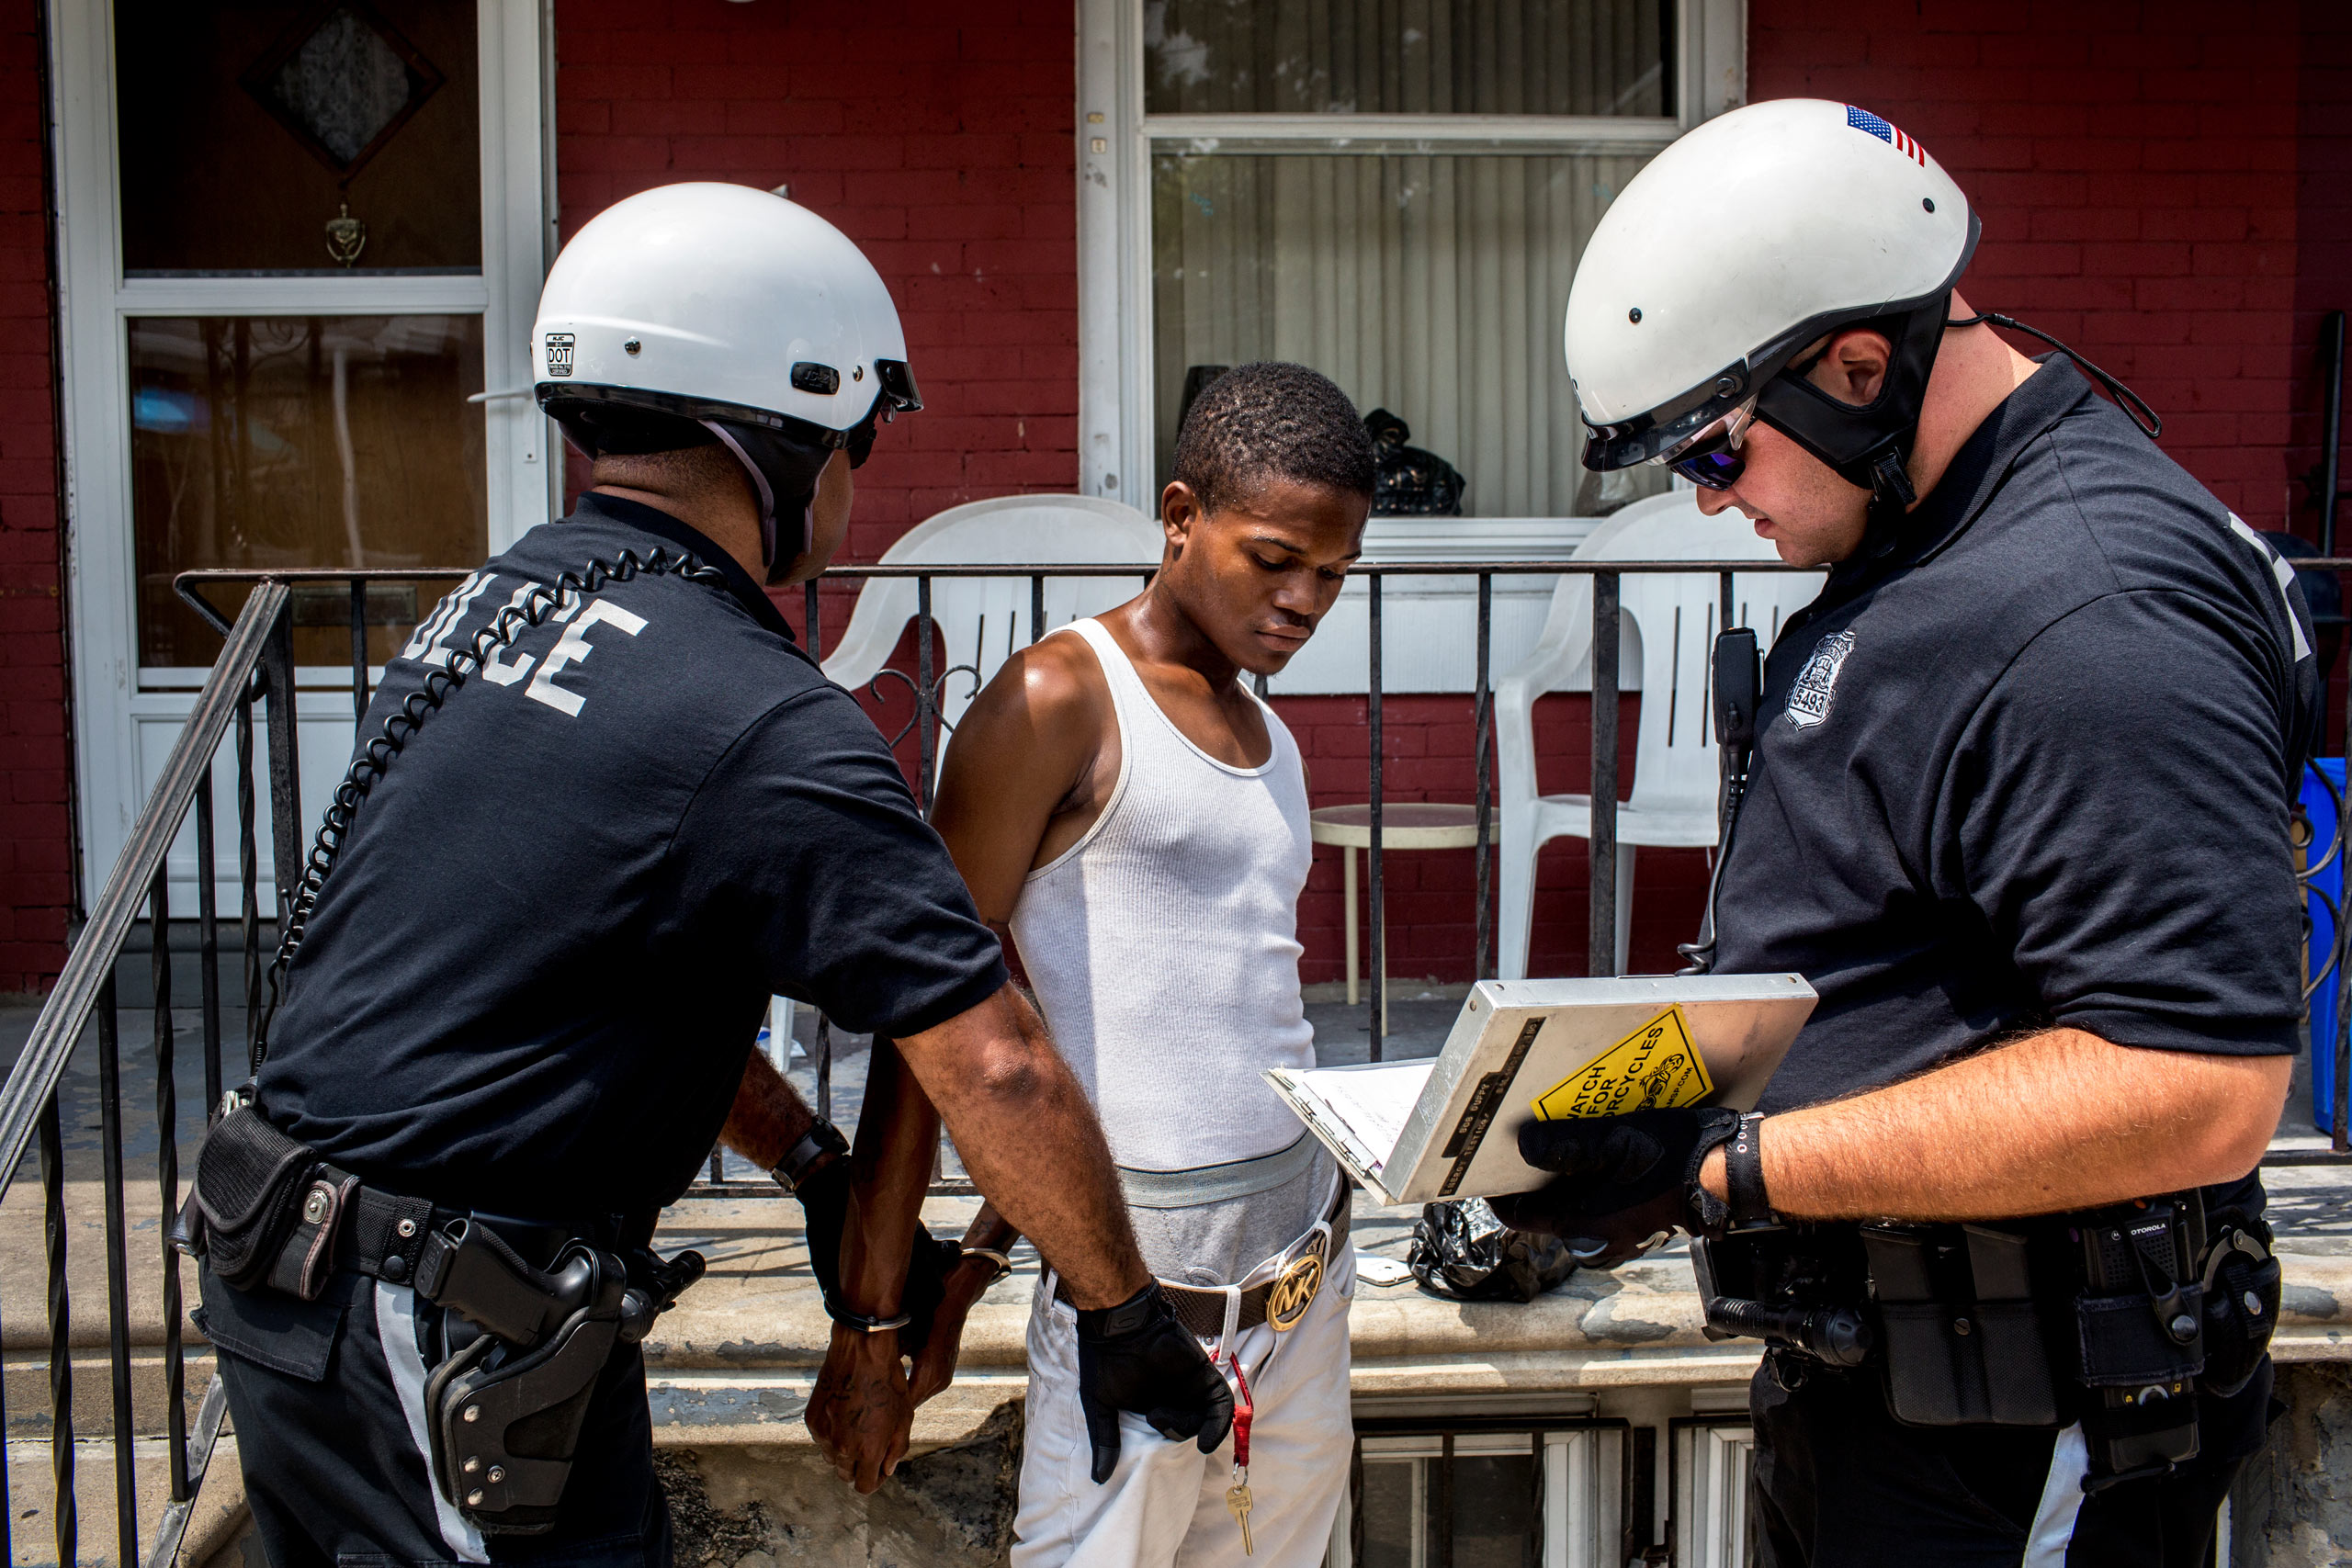 Officers Brian Dillard (left) and Robert Saccone (Right) detain a young man who fit the description of a criminal suspect in West Philadelphia. After being searched and questioned, the man was released. July 29, 2015. Philadelphia, Pa.